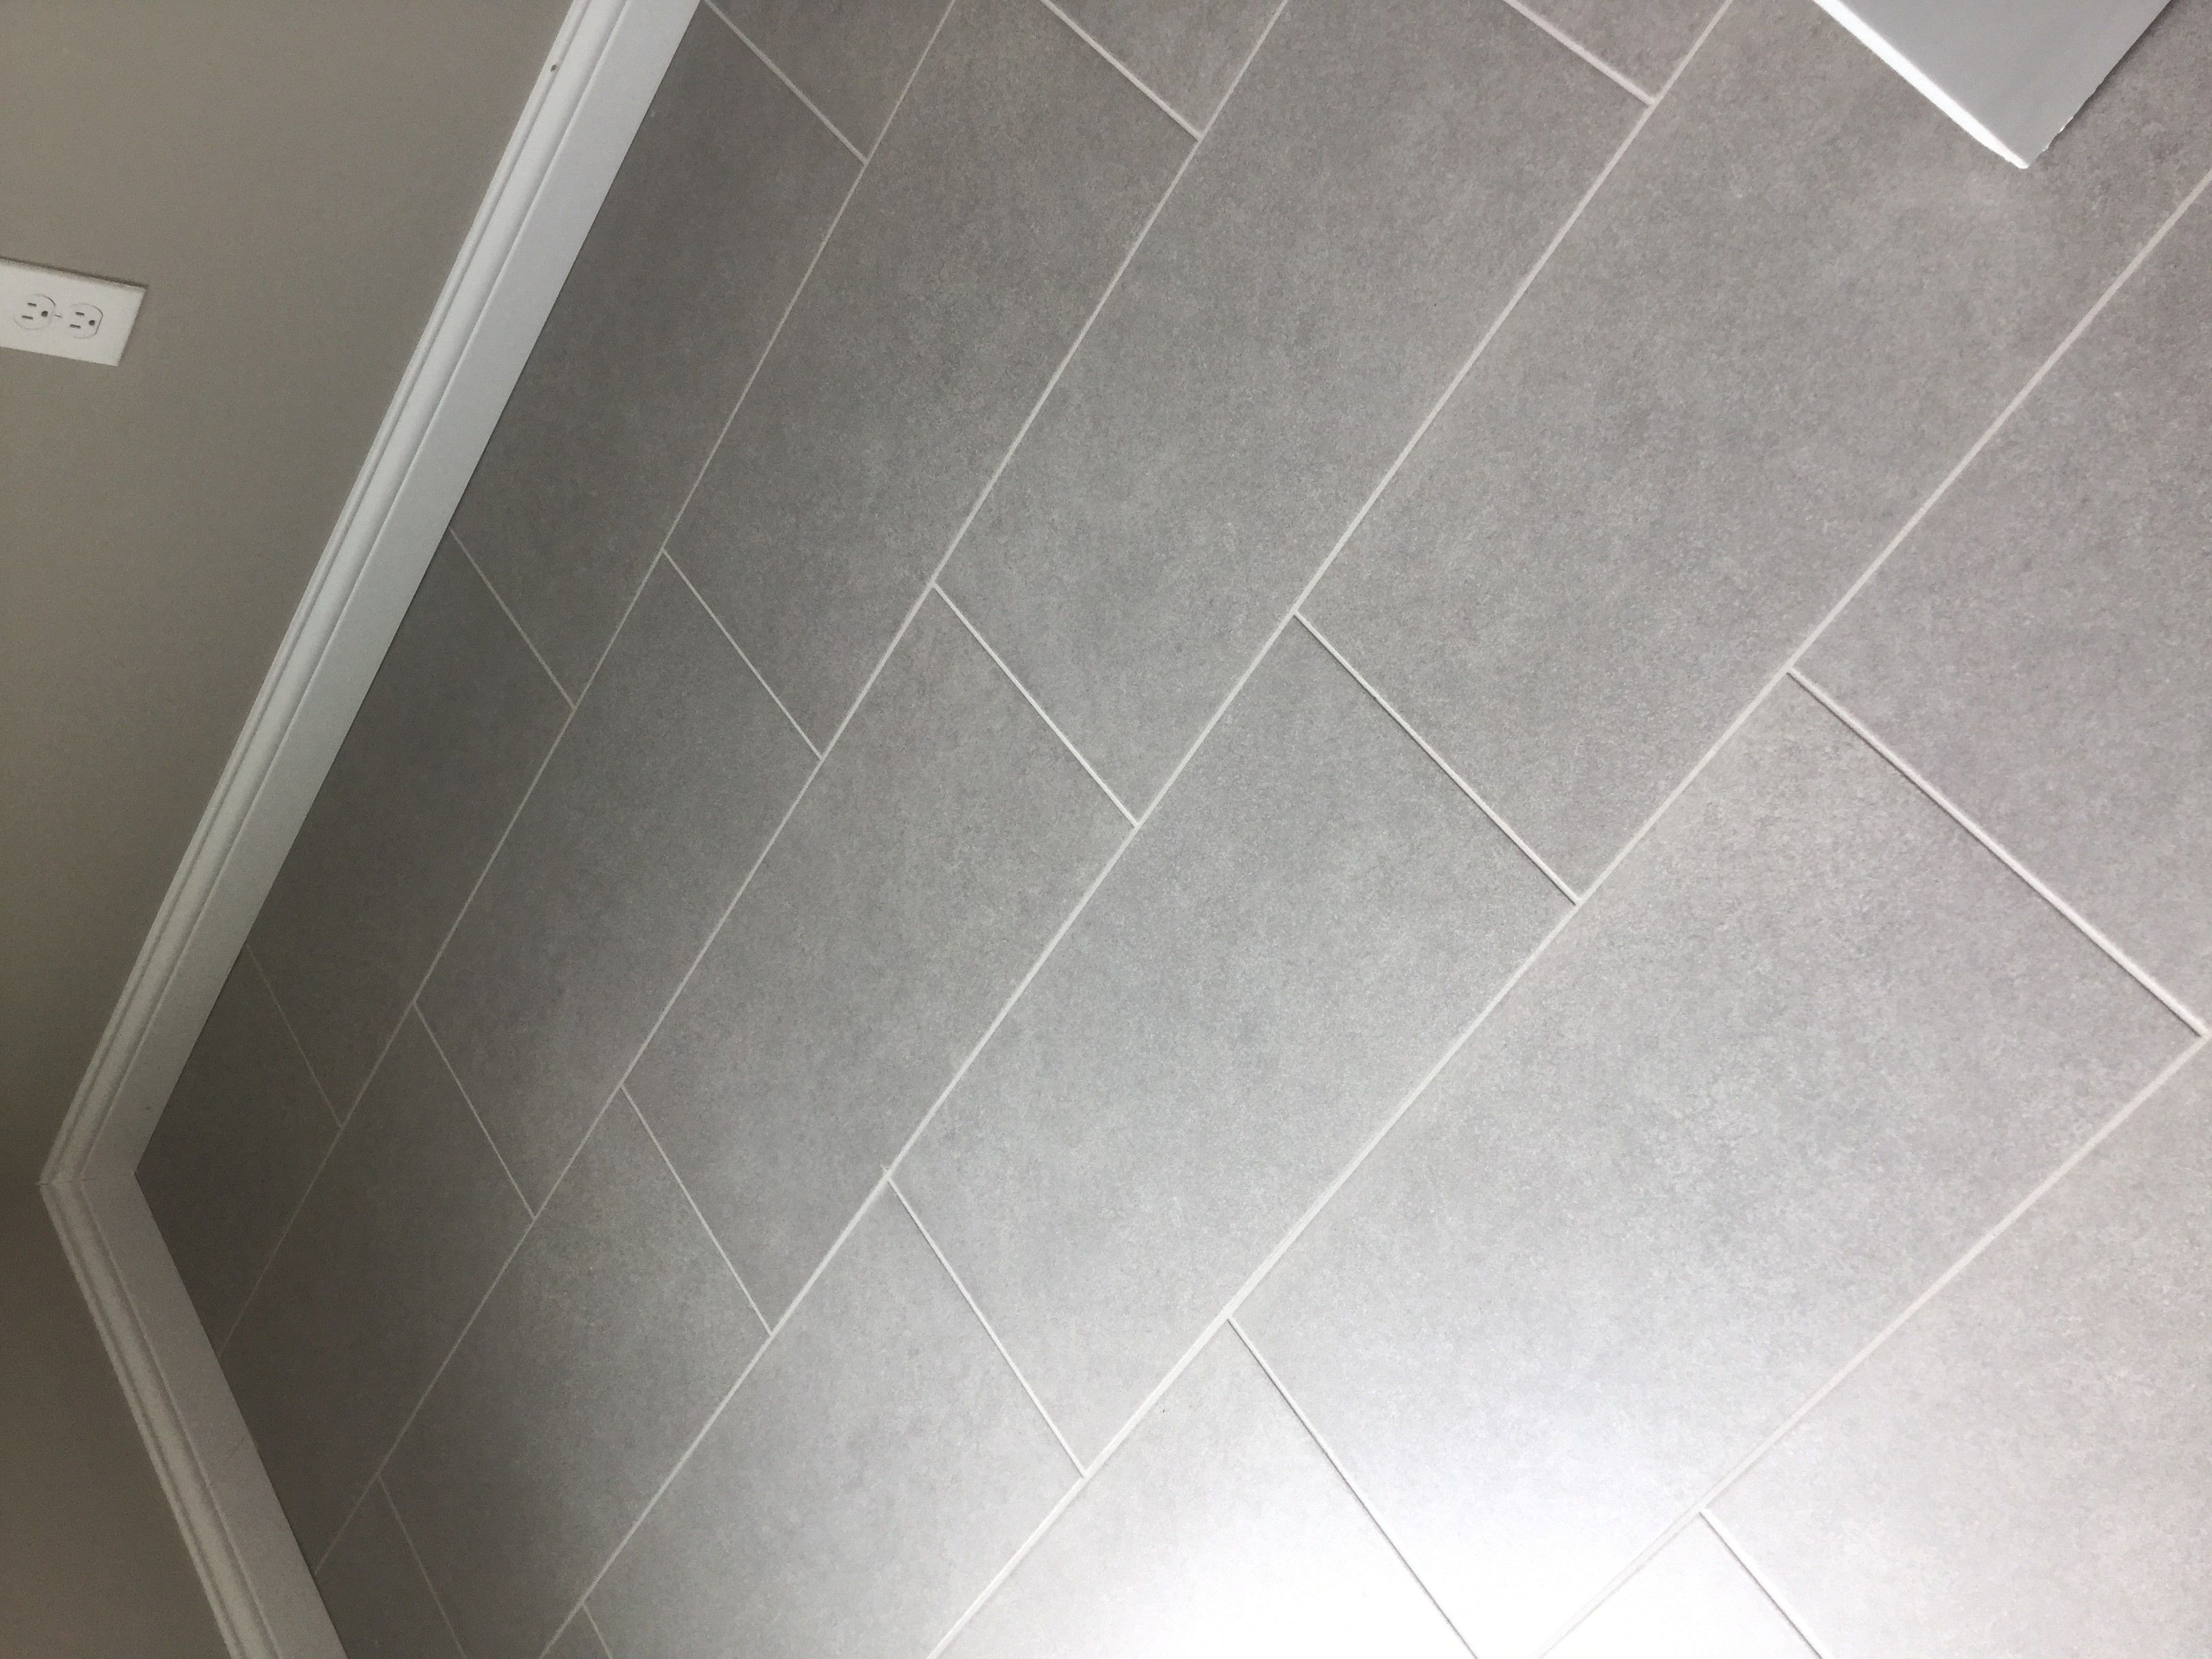 Parkway 12x24 Gray Floor Tile Gray Tile Bathroom Floor Grey Bathroom Tiles Grey Bathroom Floor